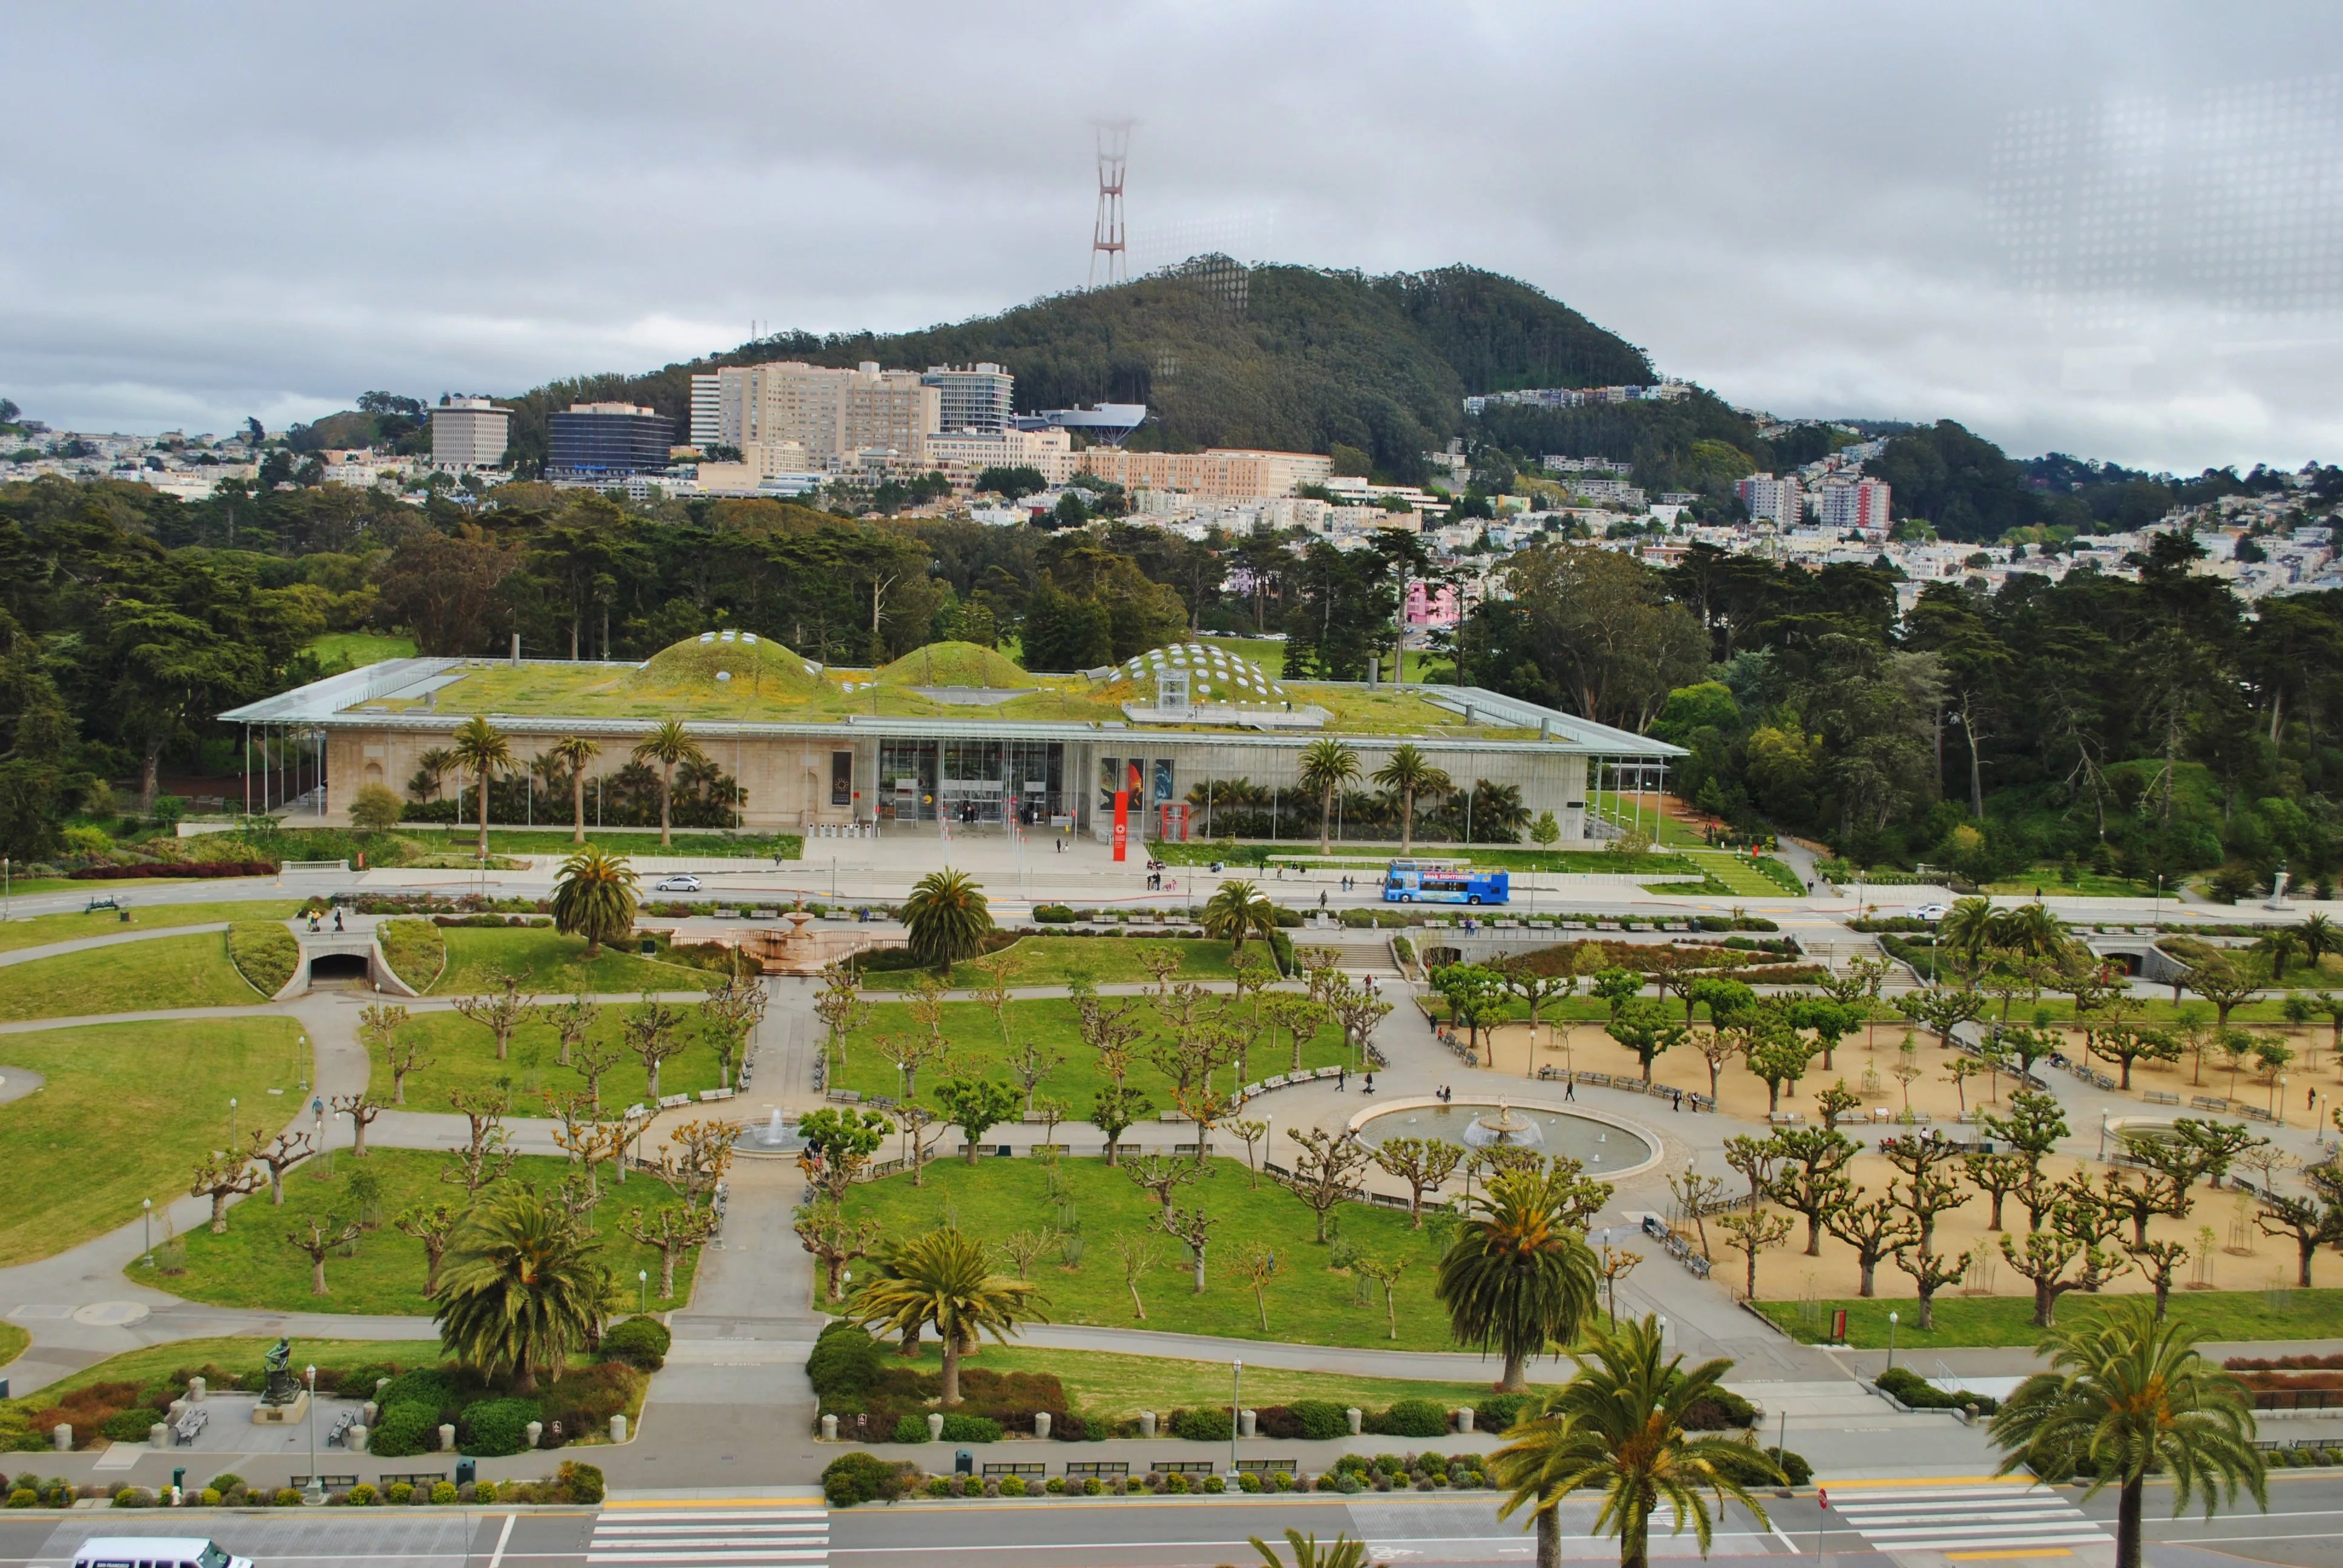 Le Meilleur Golden Gate Park View From Tower Wikiarquitectura Ce Mois Ci